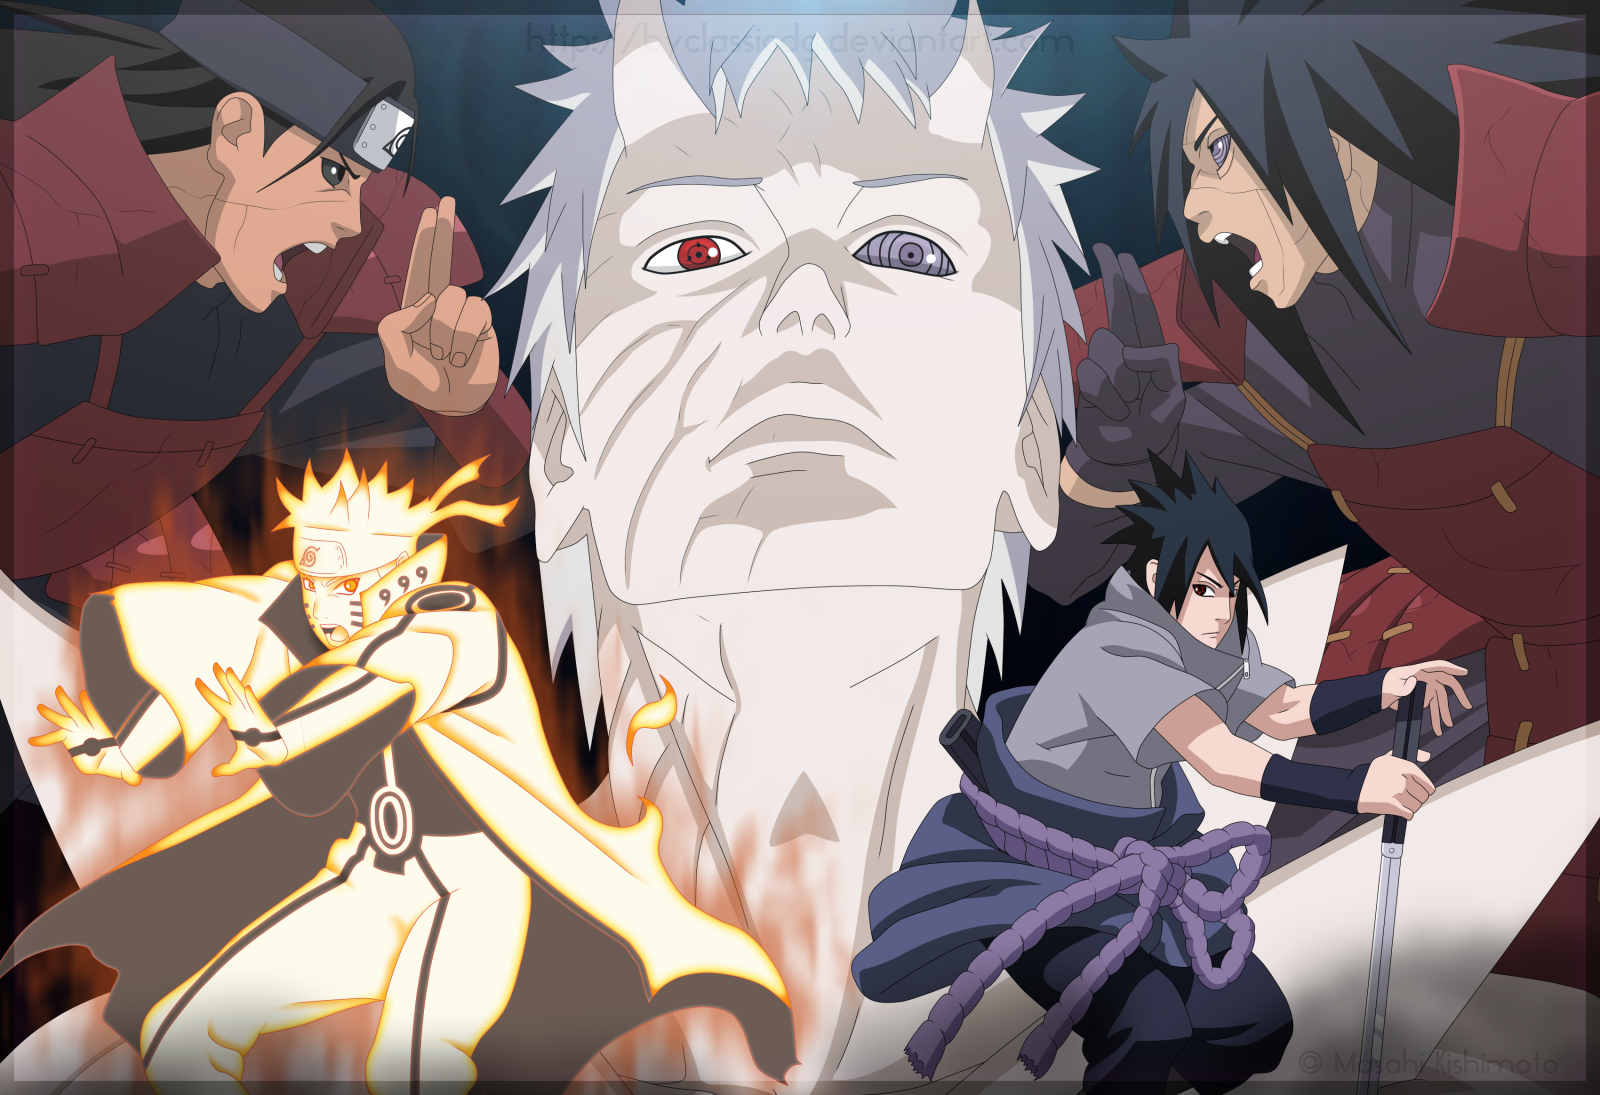 Naruto shippuden opposition by byclassicdg on deviantart naruto shippuden opposition by byclassicdg reheart Gallery